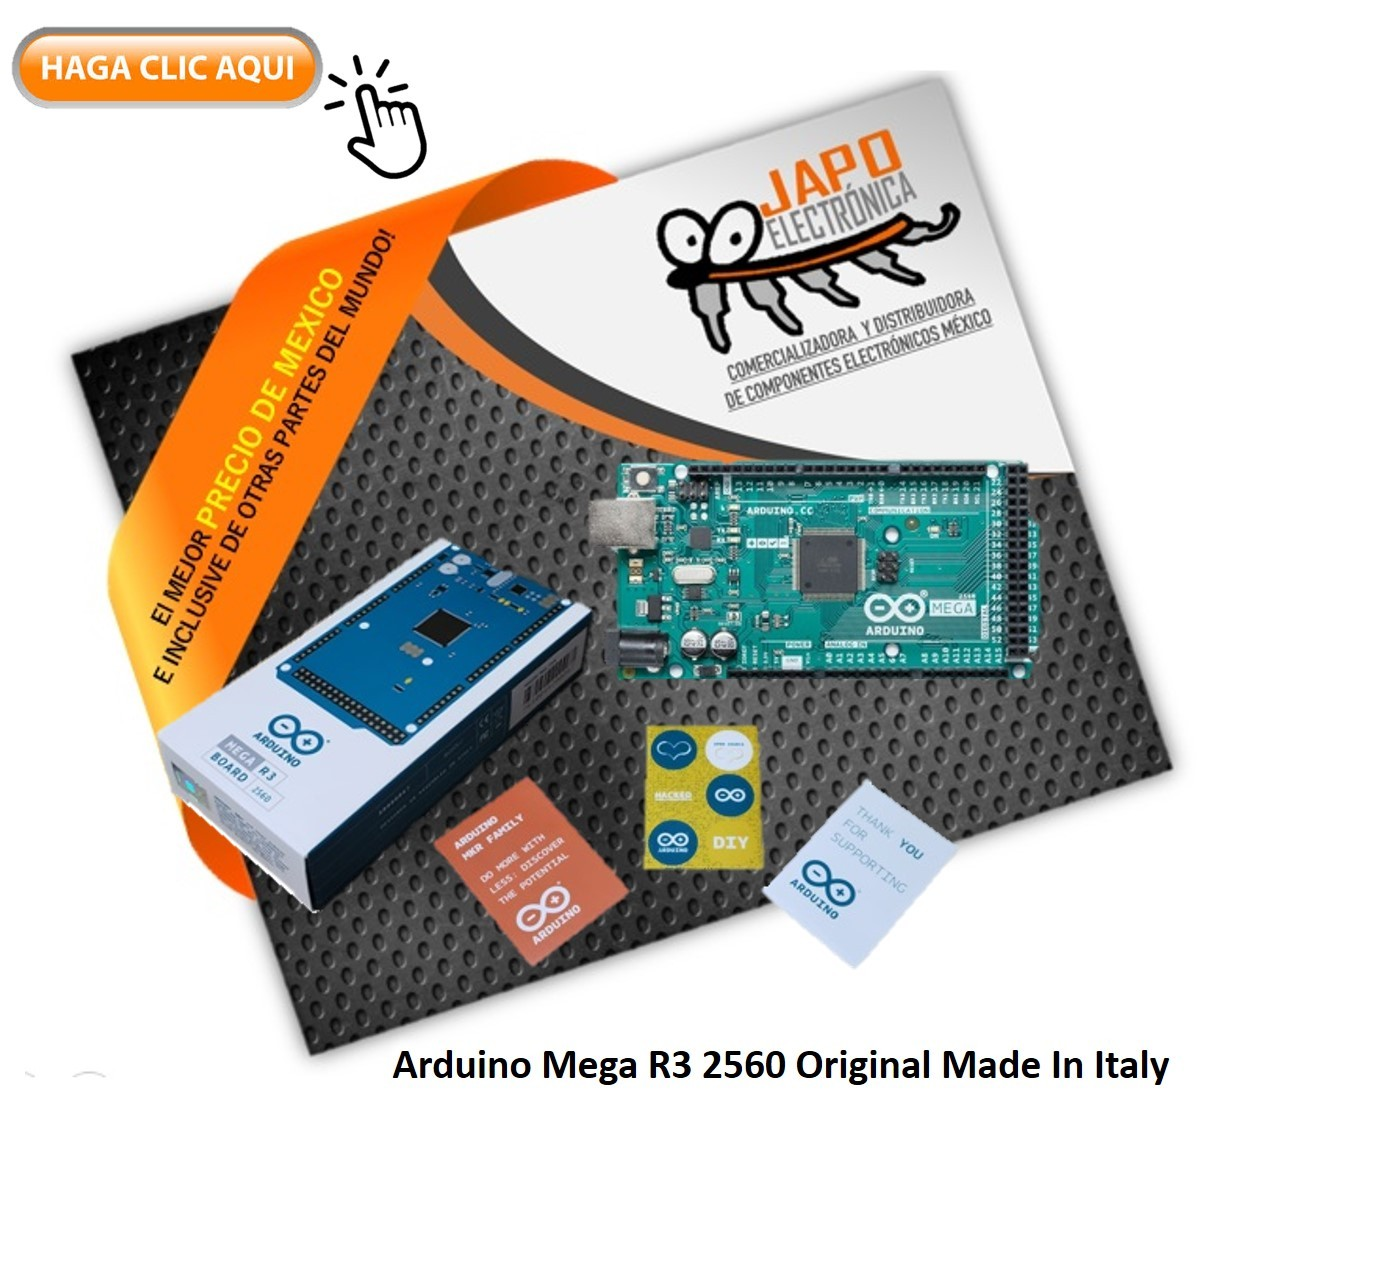 Arduino Mega R3 2560 Original Made In Italy